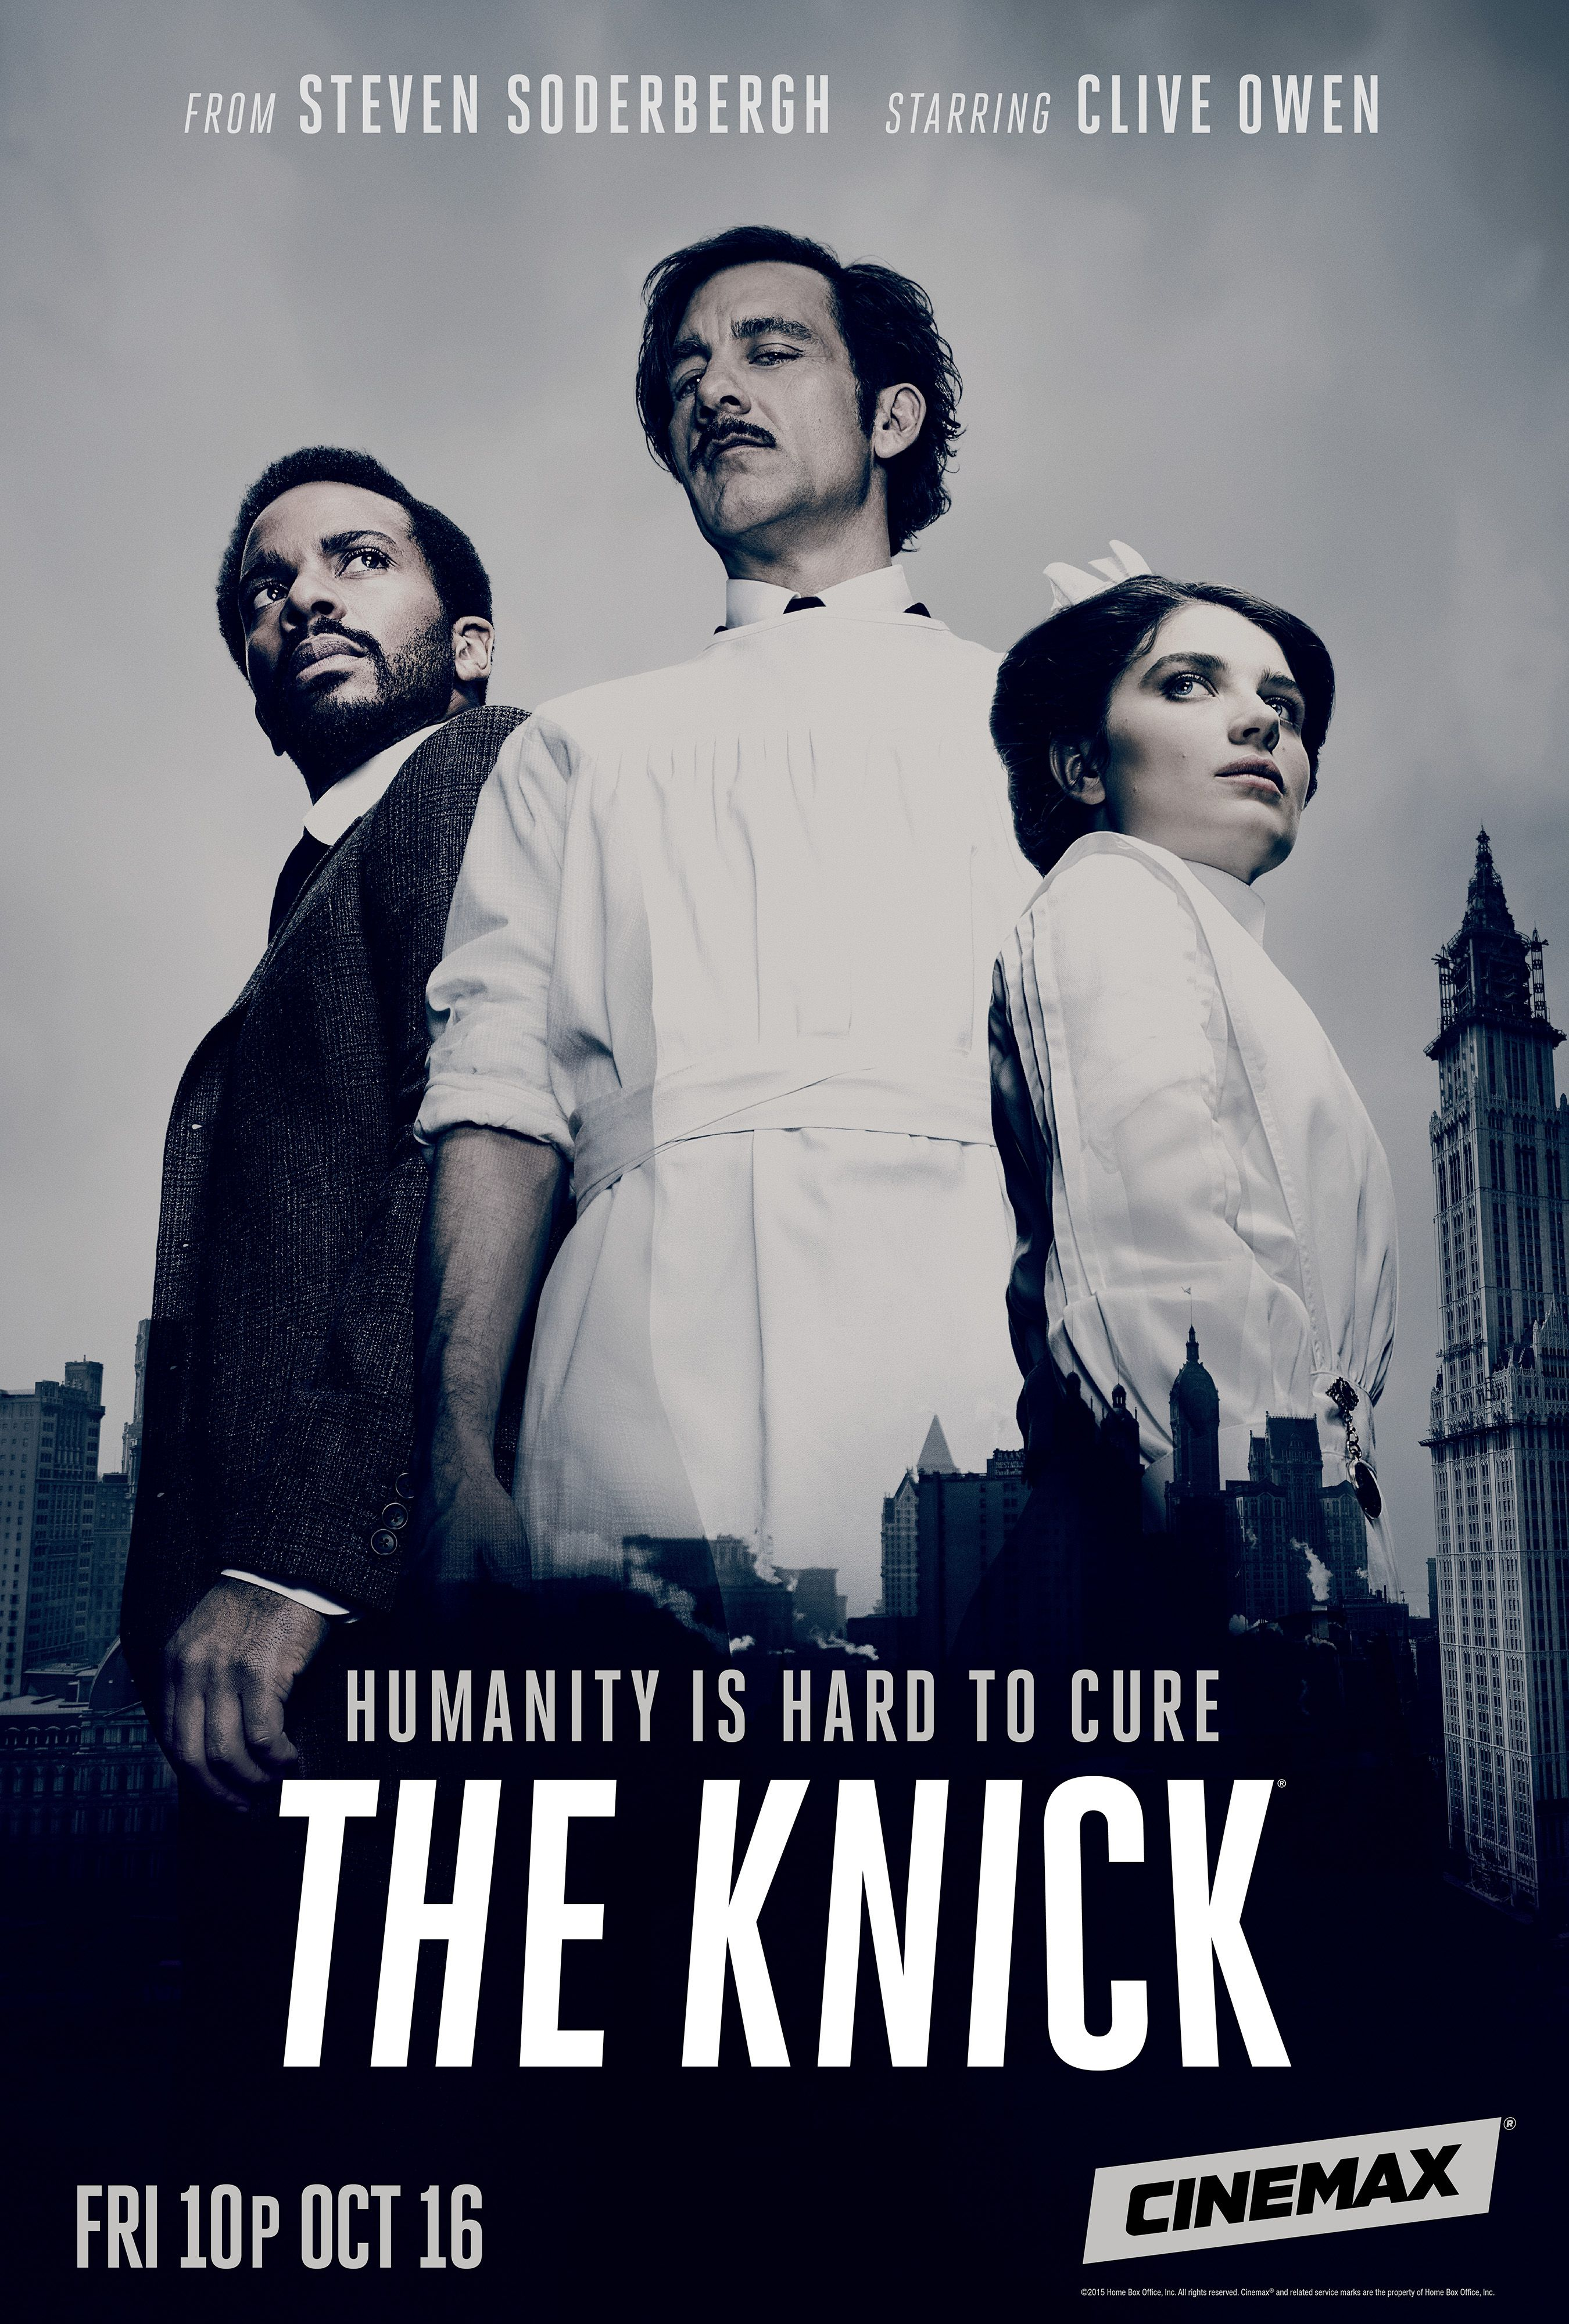 The Knick: Steven Soderbergh's Six-Year Plan, Cast Changes | Collider